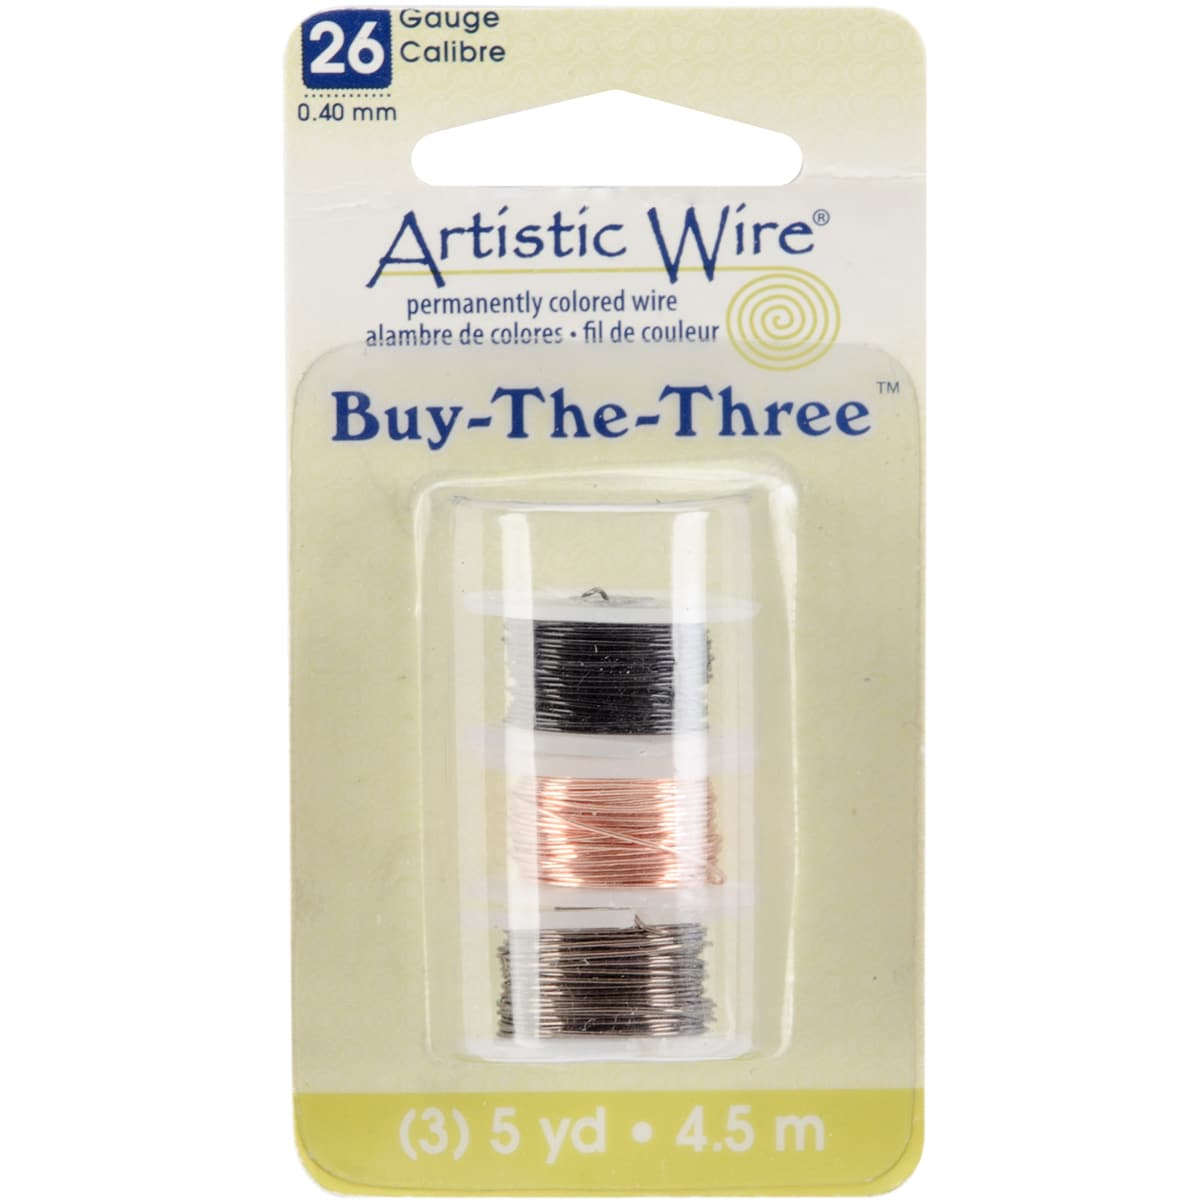 Artistic Wire Buy The Three 3/Pkg-26 Gauge Black/Natural/Gunmetal 5 Yd/Ea